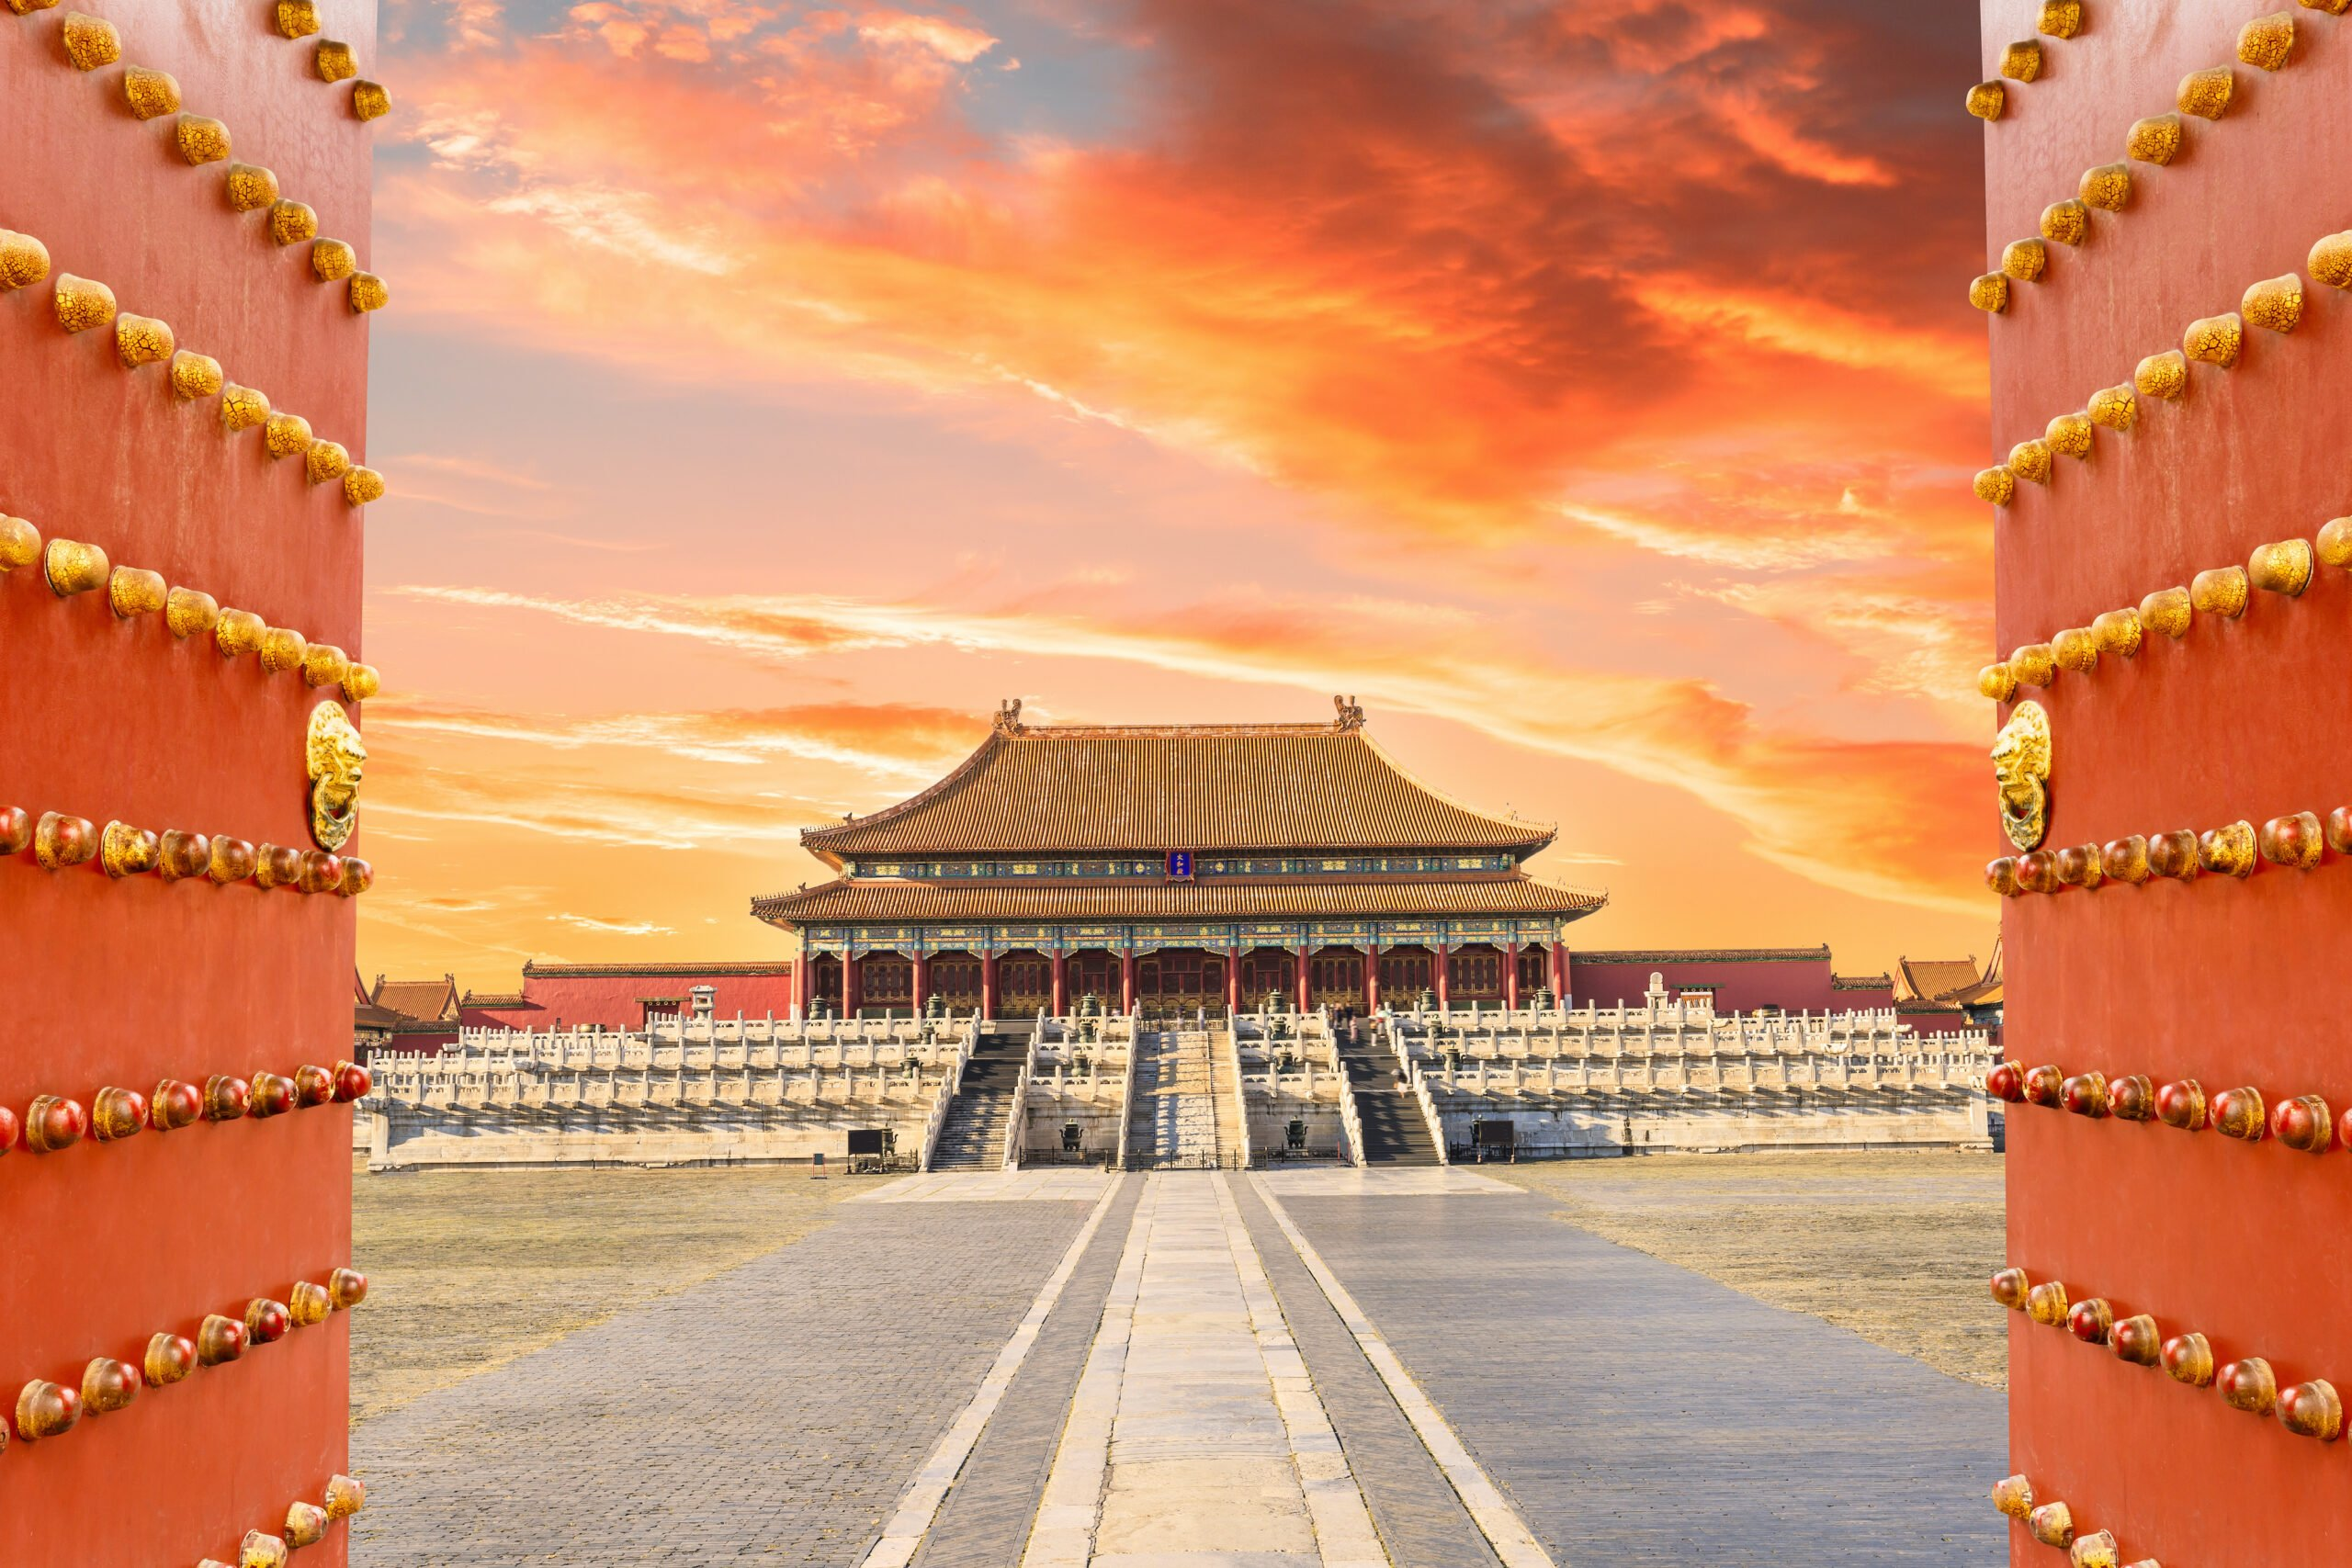 Discover The Historical Forbidden City In Our Best Of Silk Road 10 Day Tour